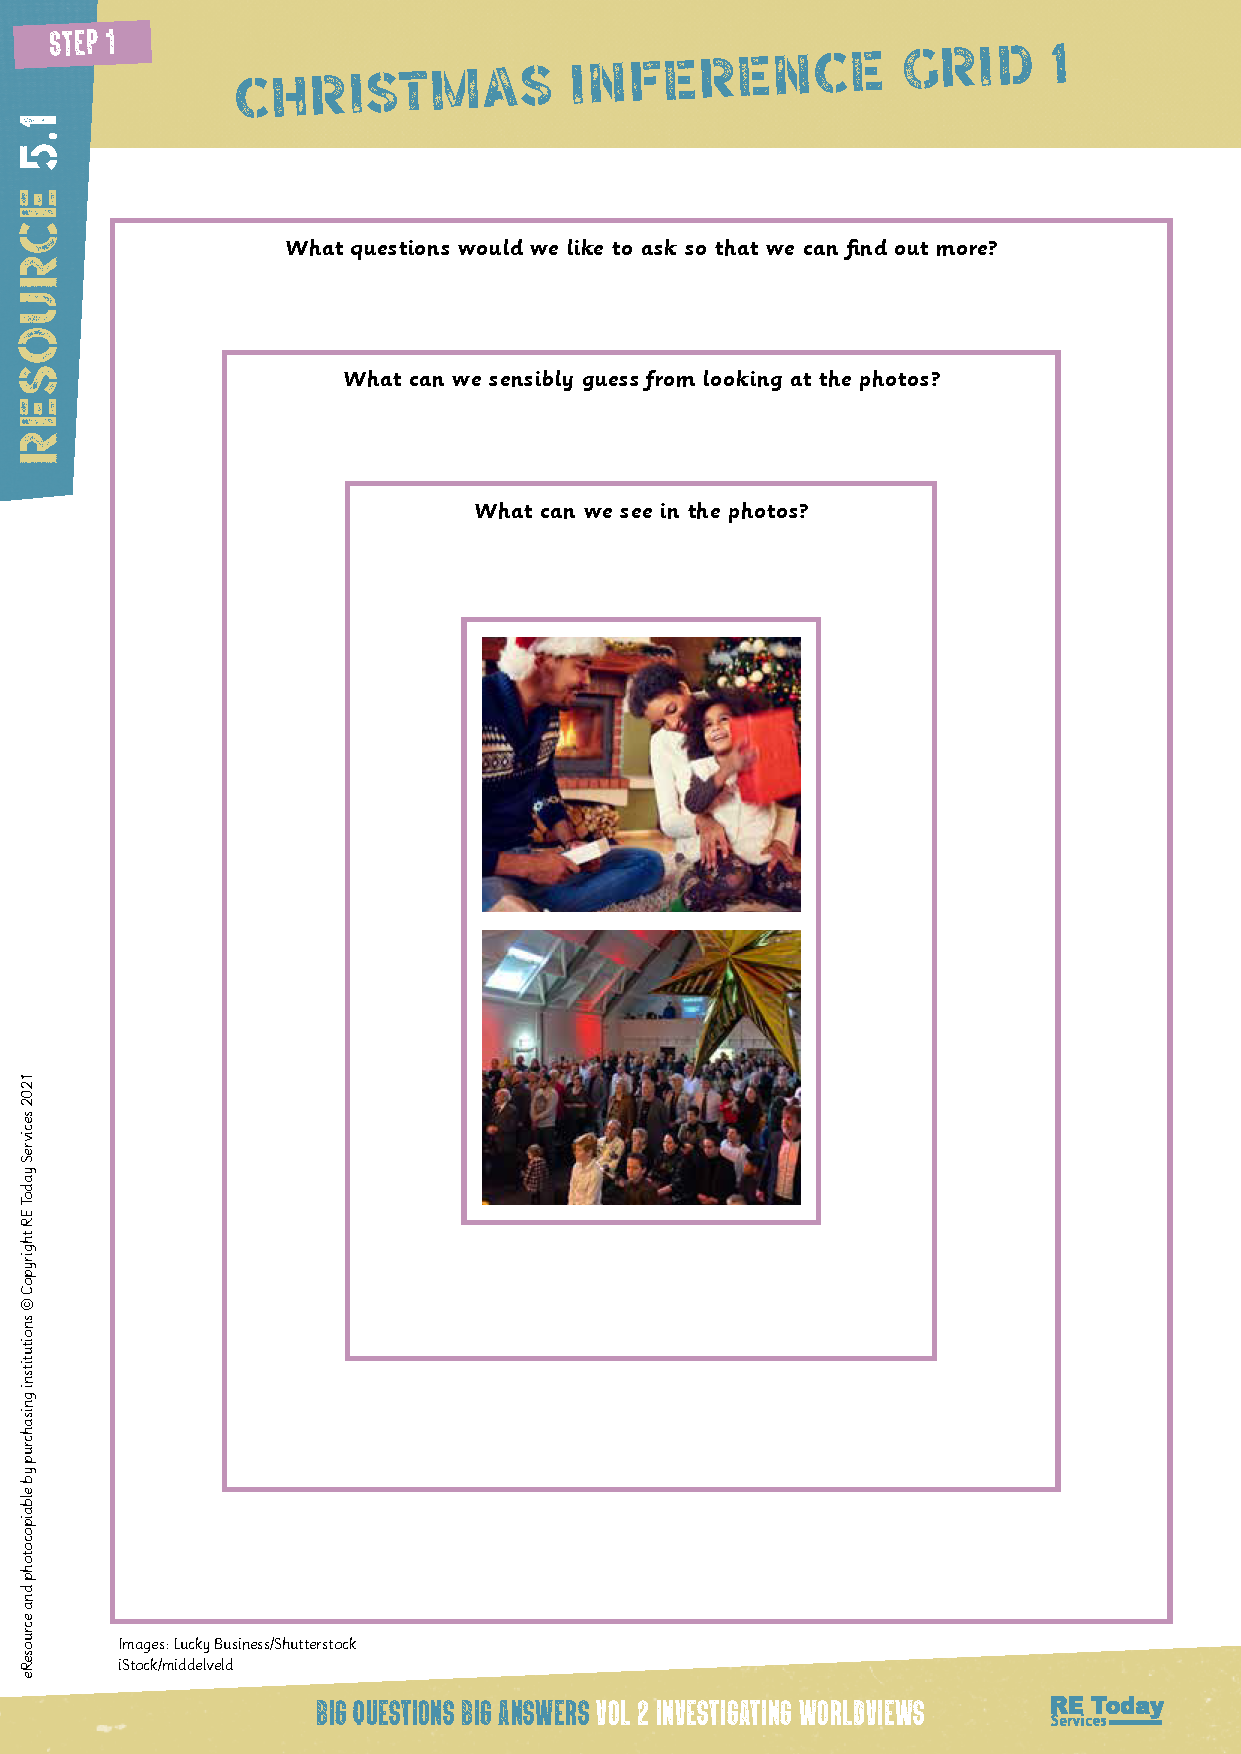 Christmas Inference Grid 1